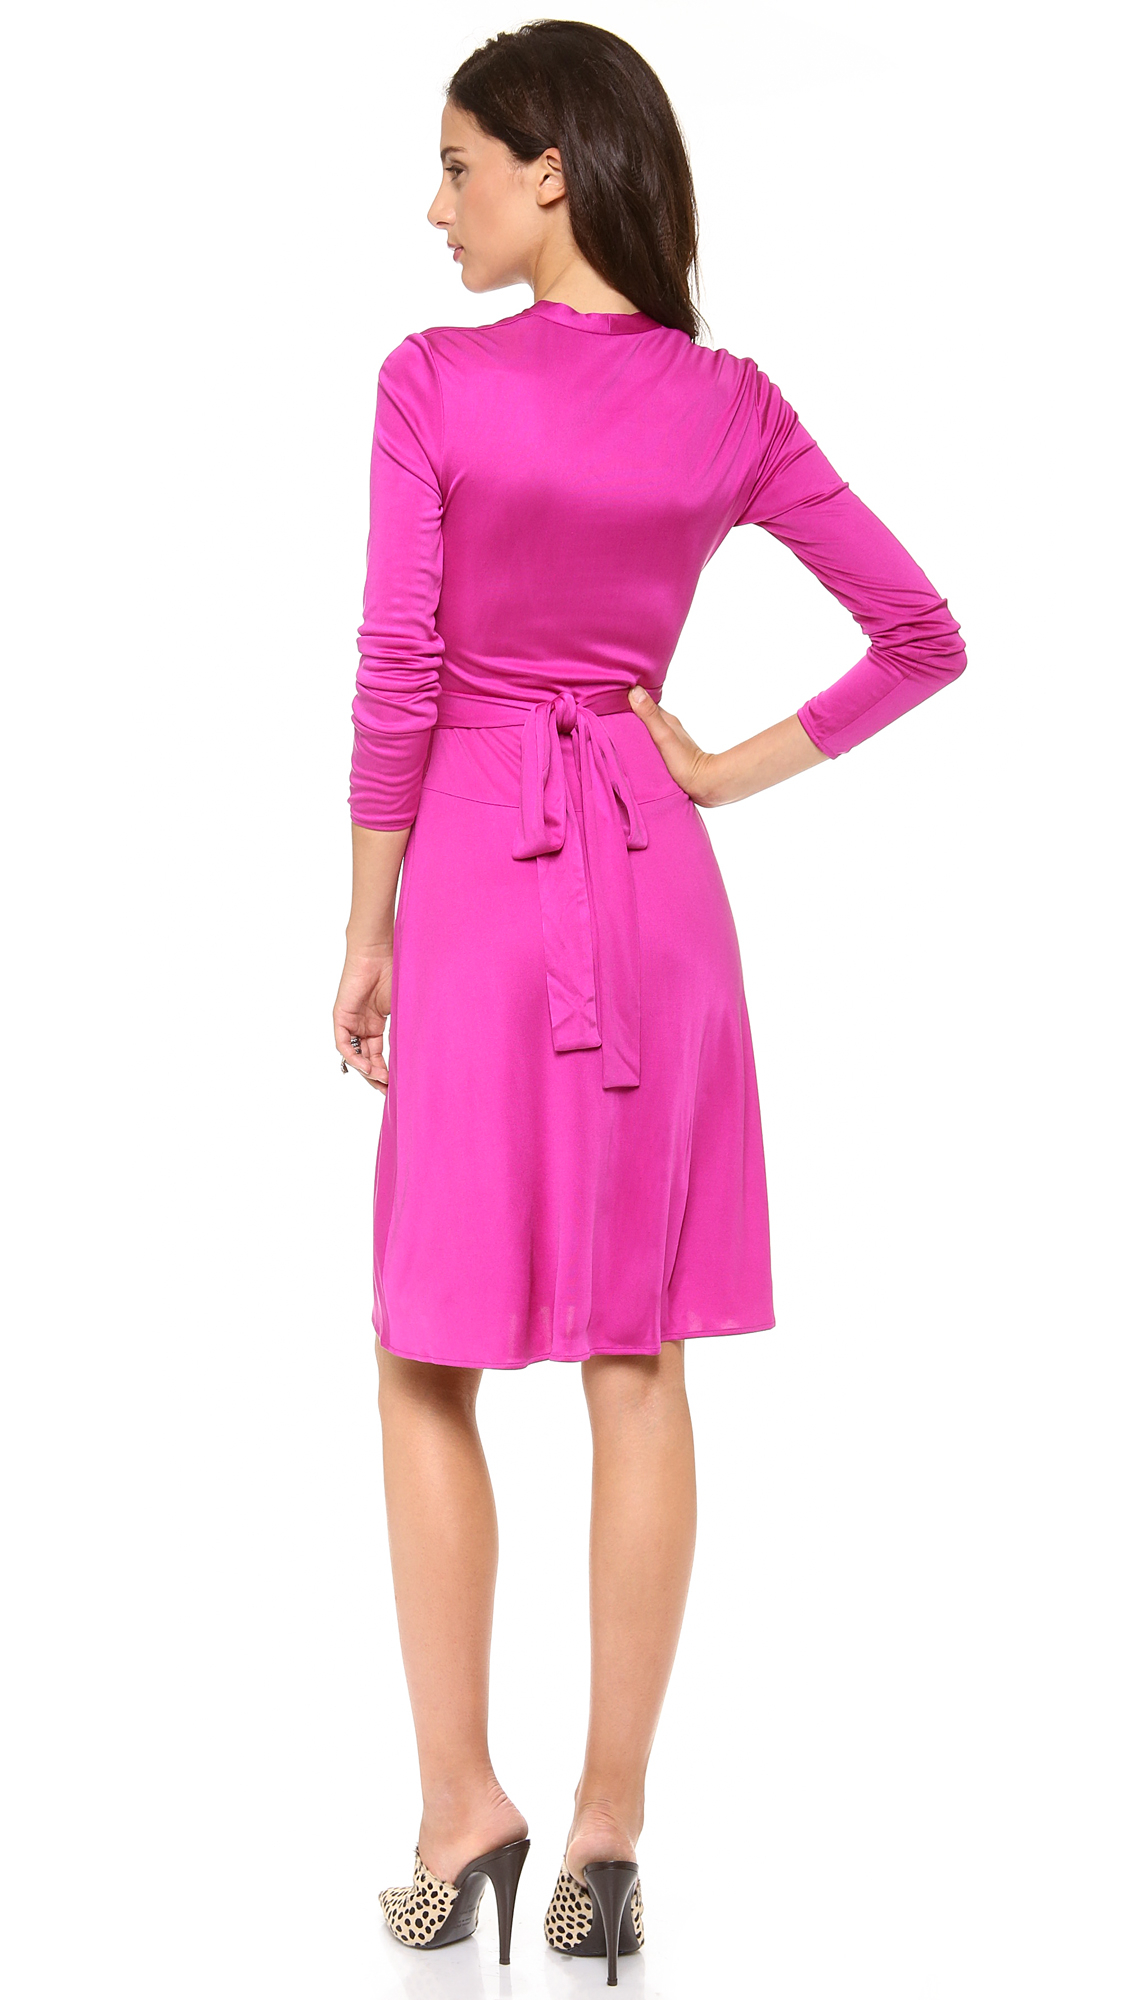 Issa Long Sleeve Wrap Dress - Verbena in Pink | Lyst